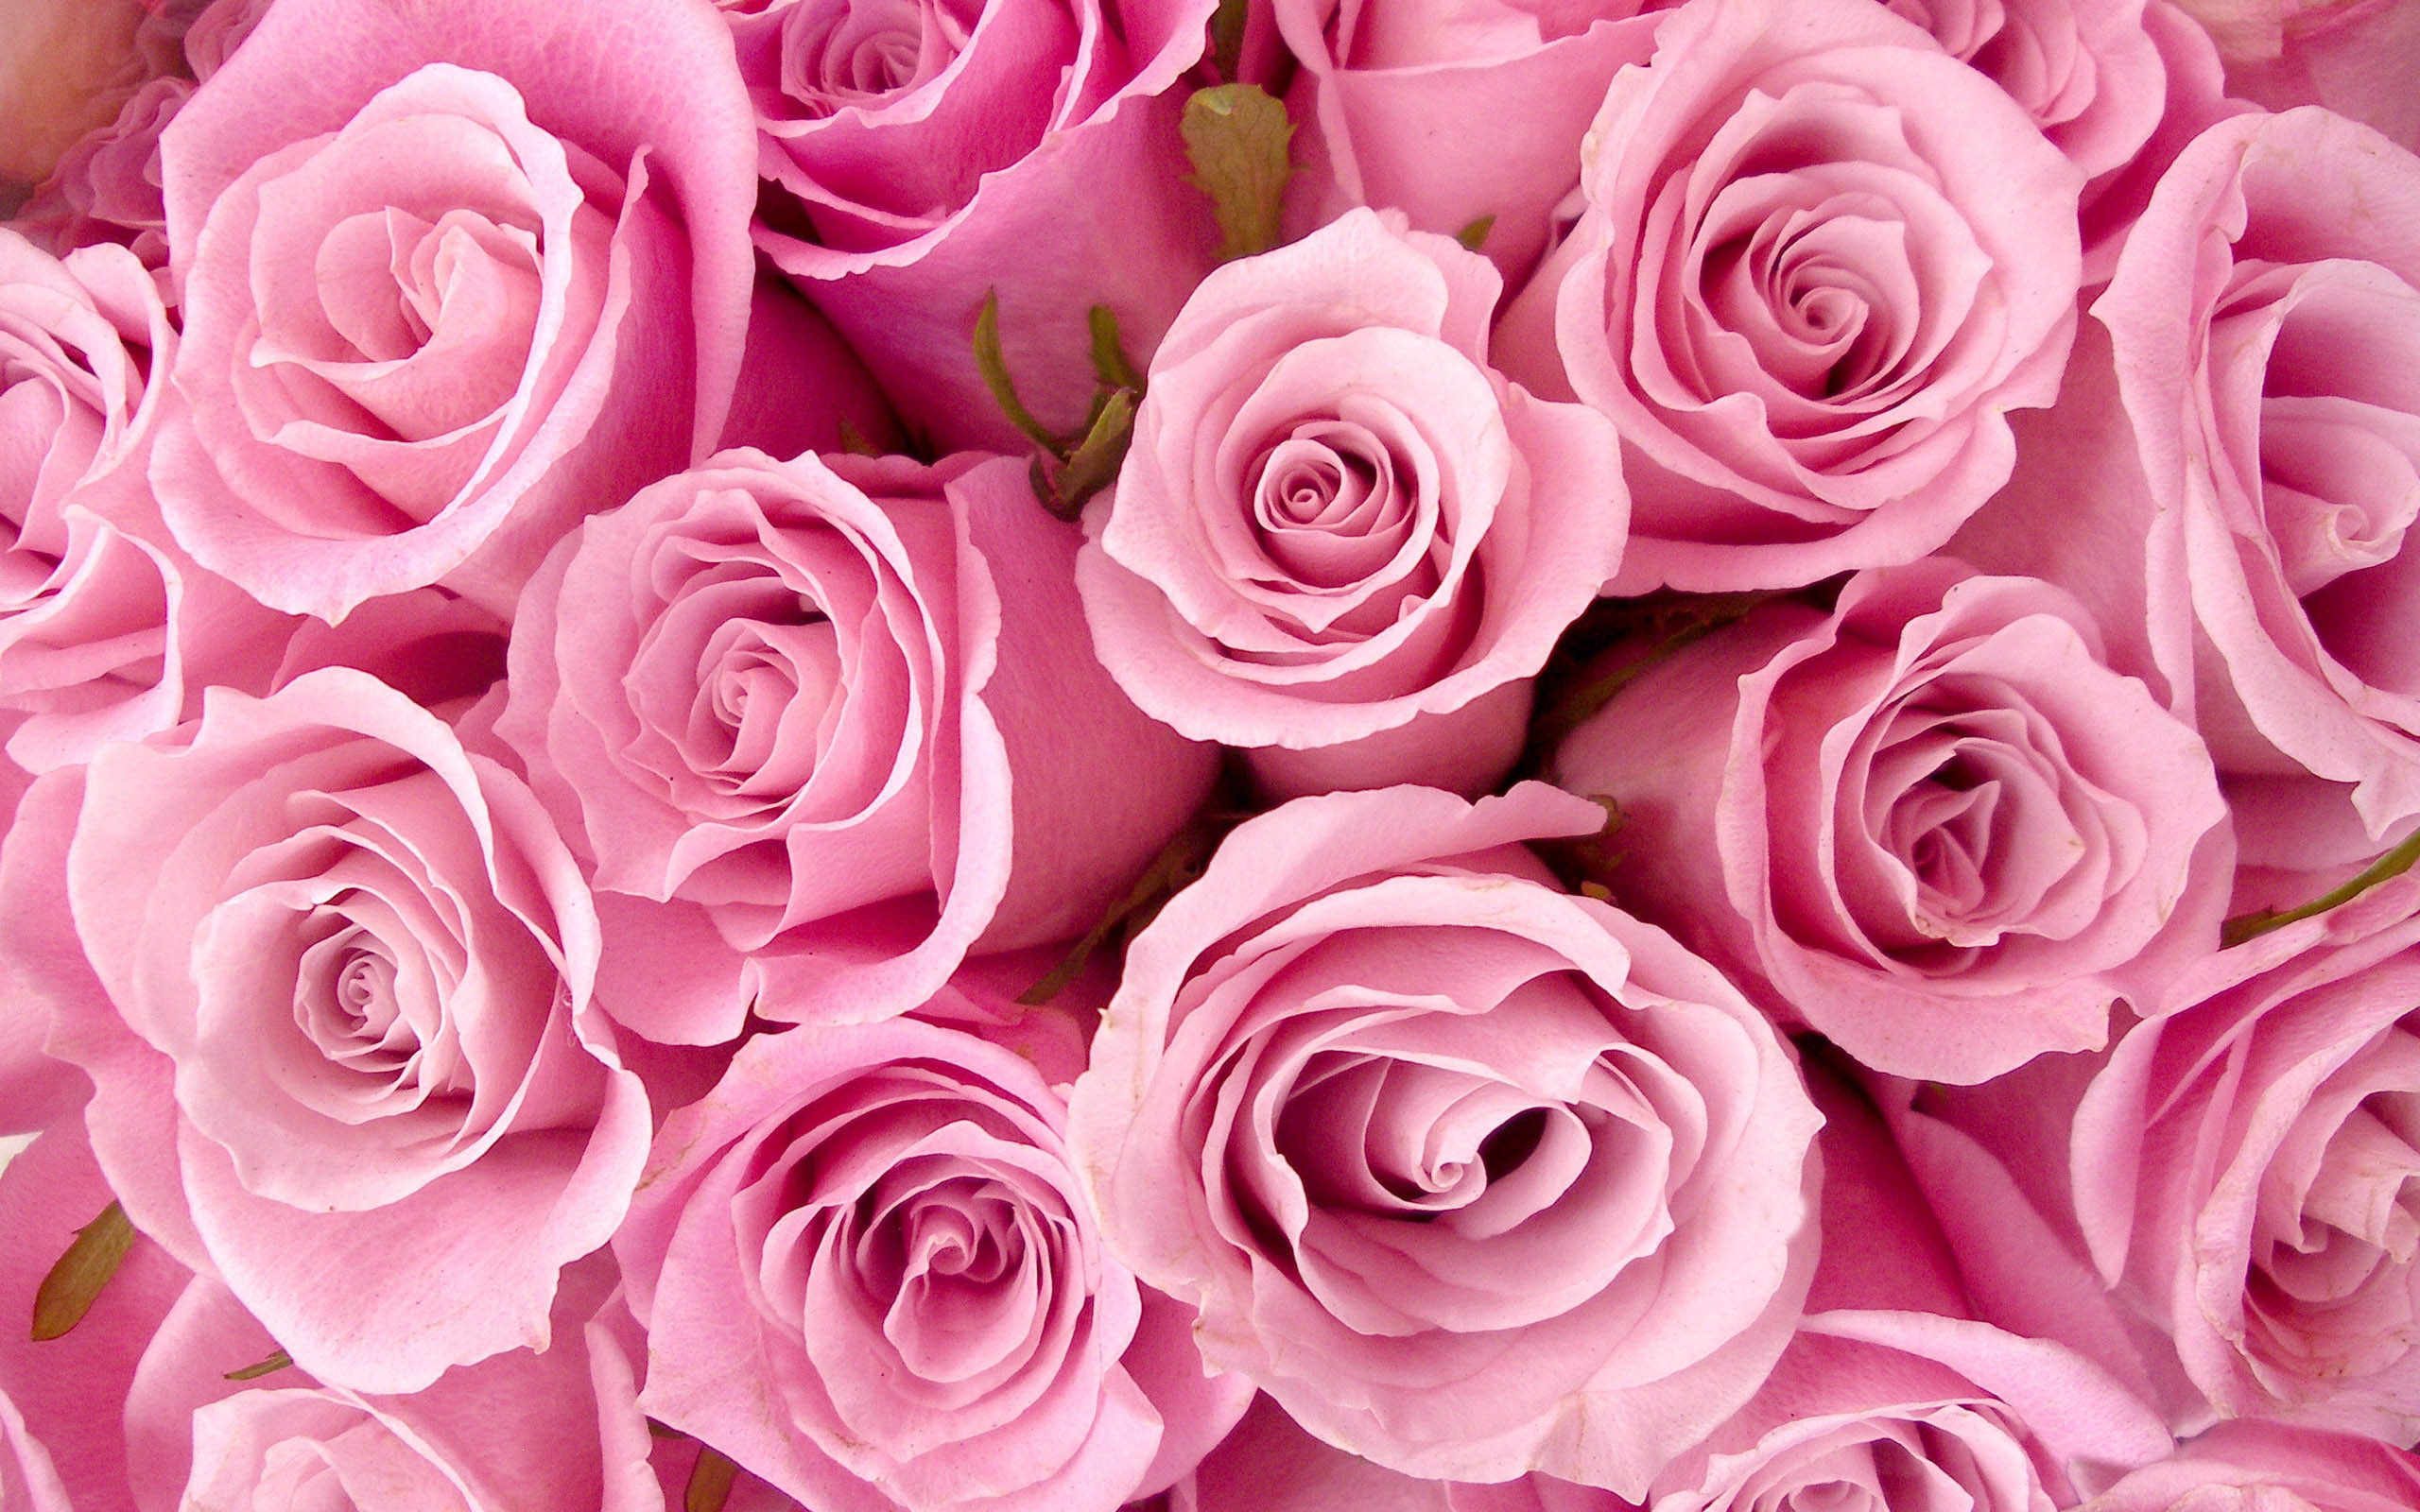 pink roses wallpapers pink fishes girly pink wallpapers hot pink 2560x1600